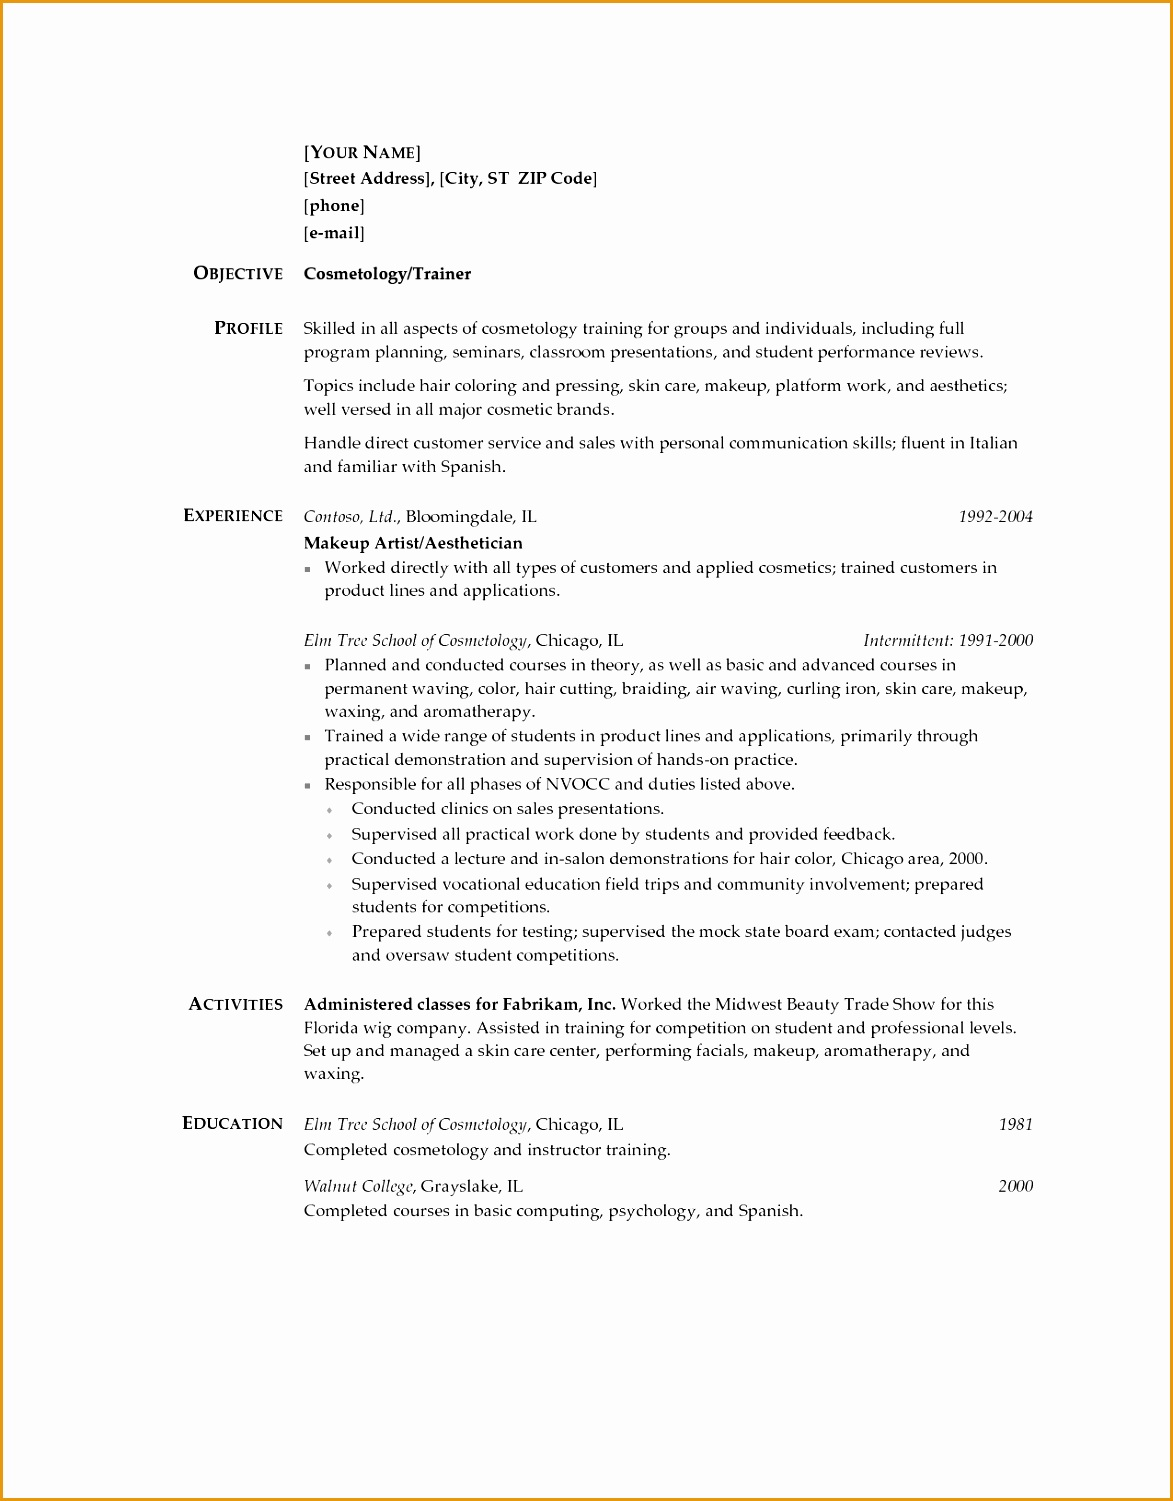 cosmetology resumes sample resume for cosmetologist cosmetologist resume samples template and tips onlineresume resume template student Cosmetologist Resume Templates